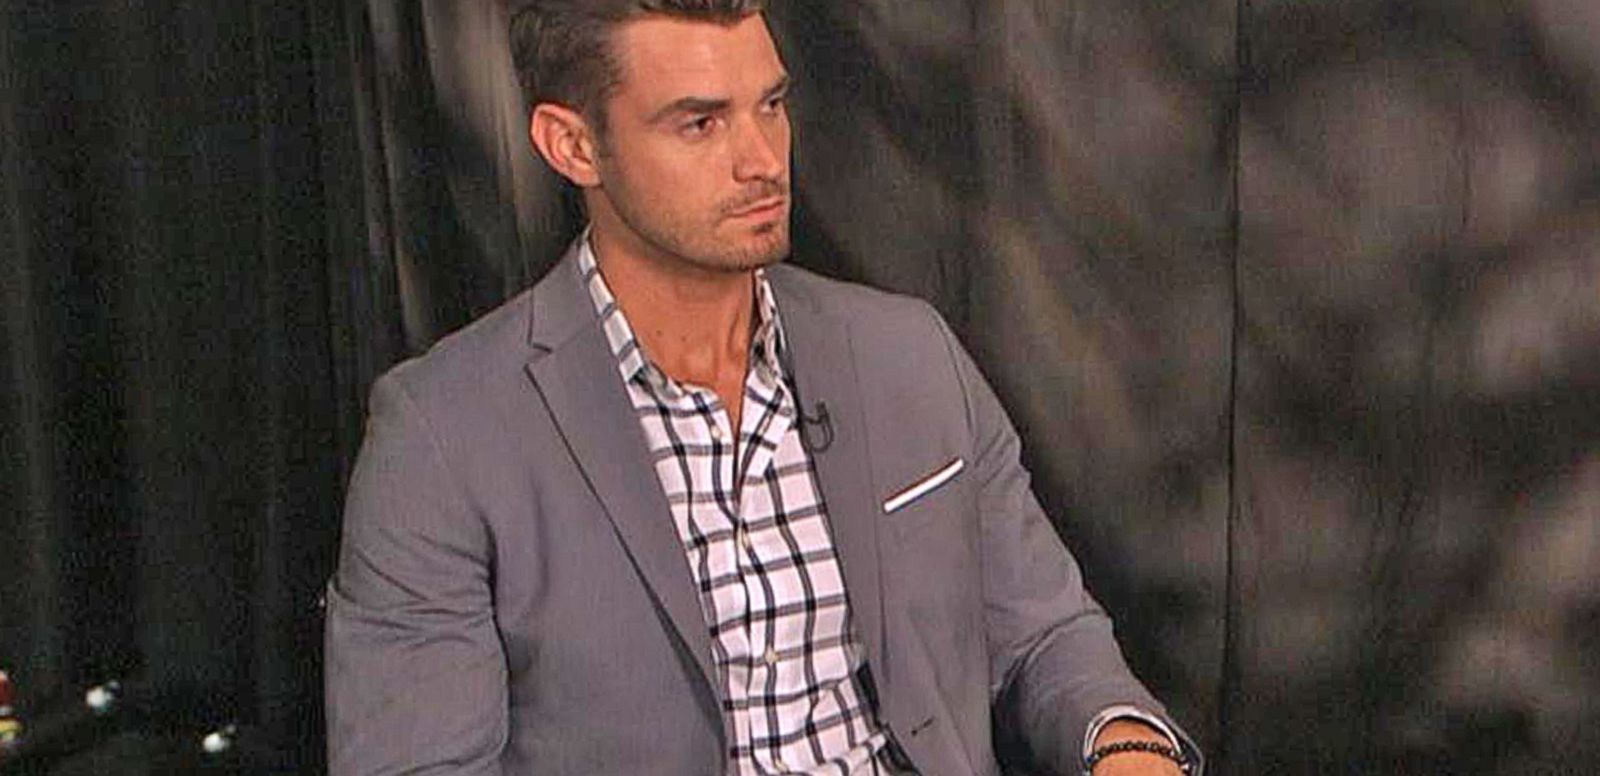 VIDEO: 'The Bachelorette': Inside the Men Tell All